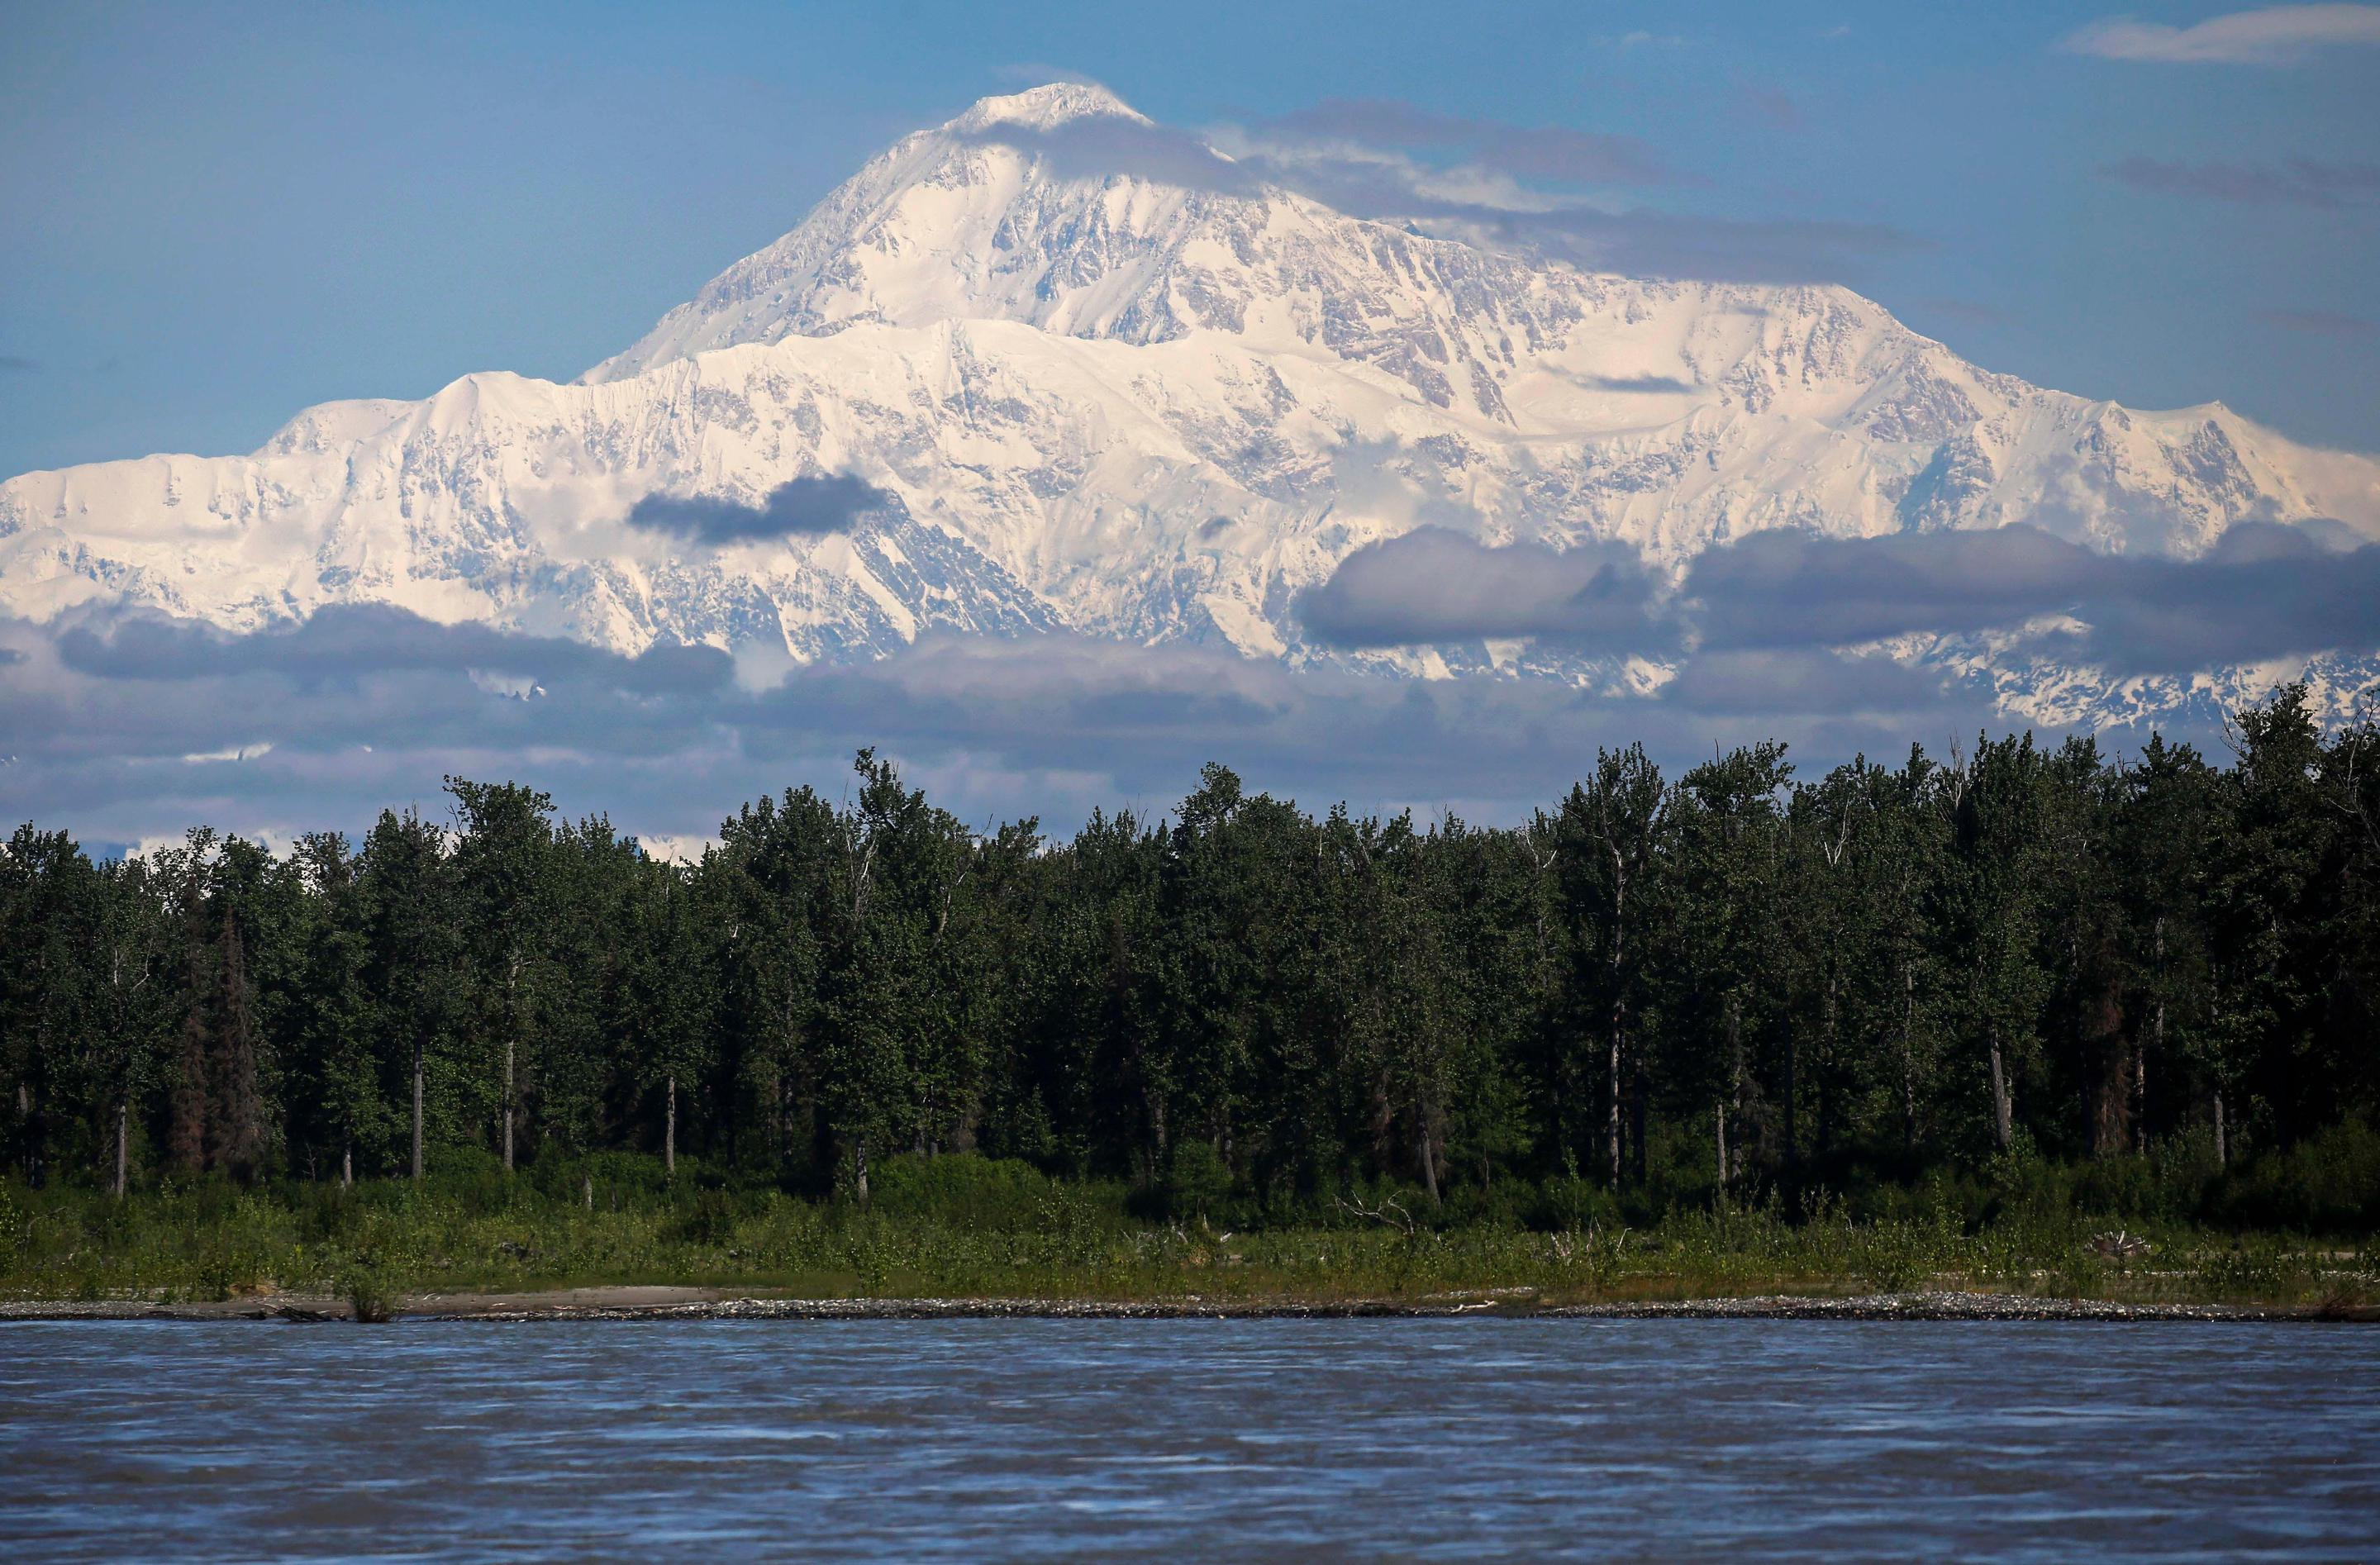 Talkeetna ViewThe view of Denali from the south, in Talkeetna, Alaska